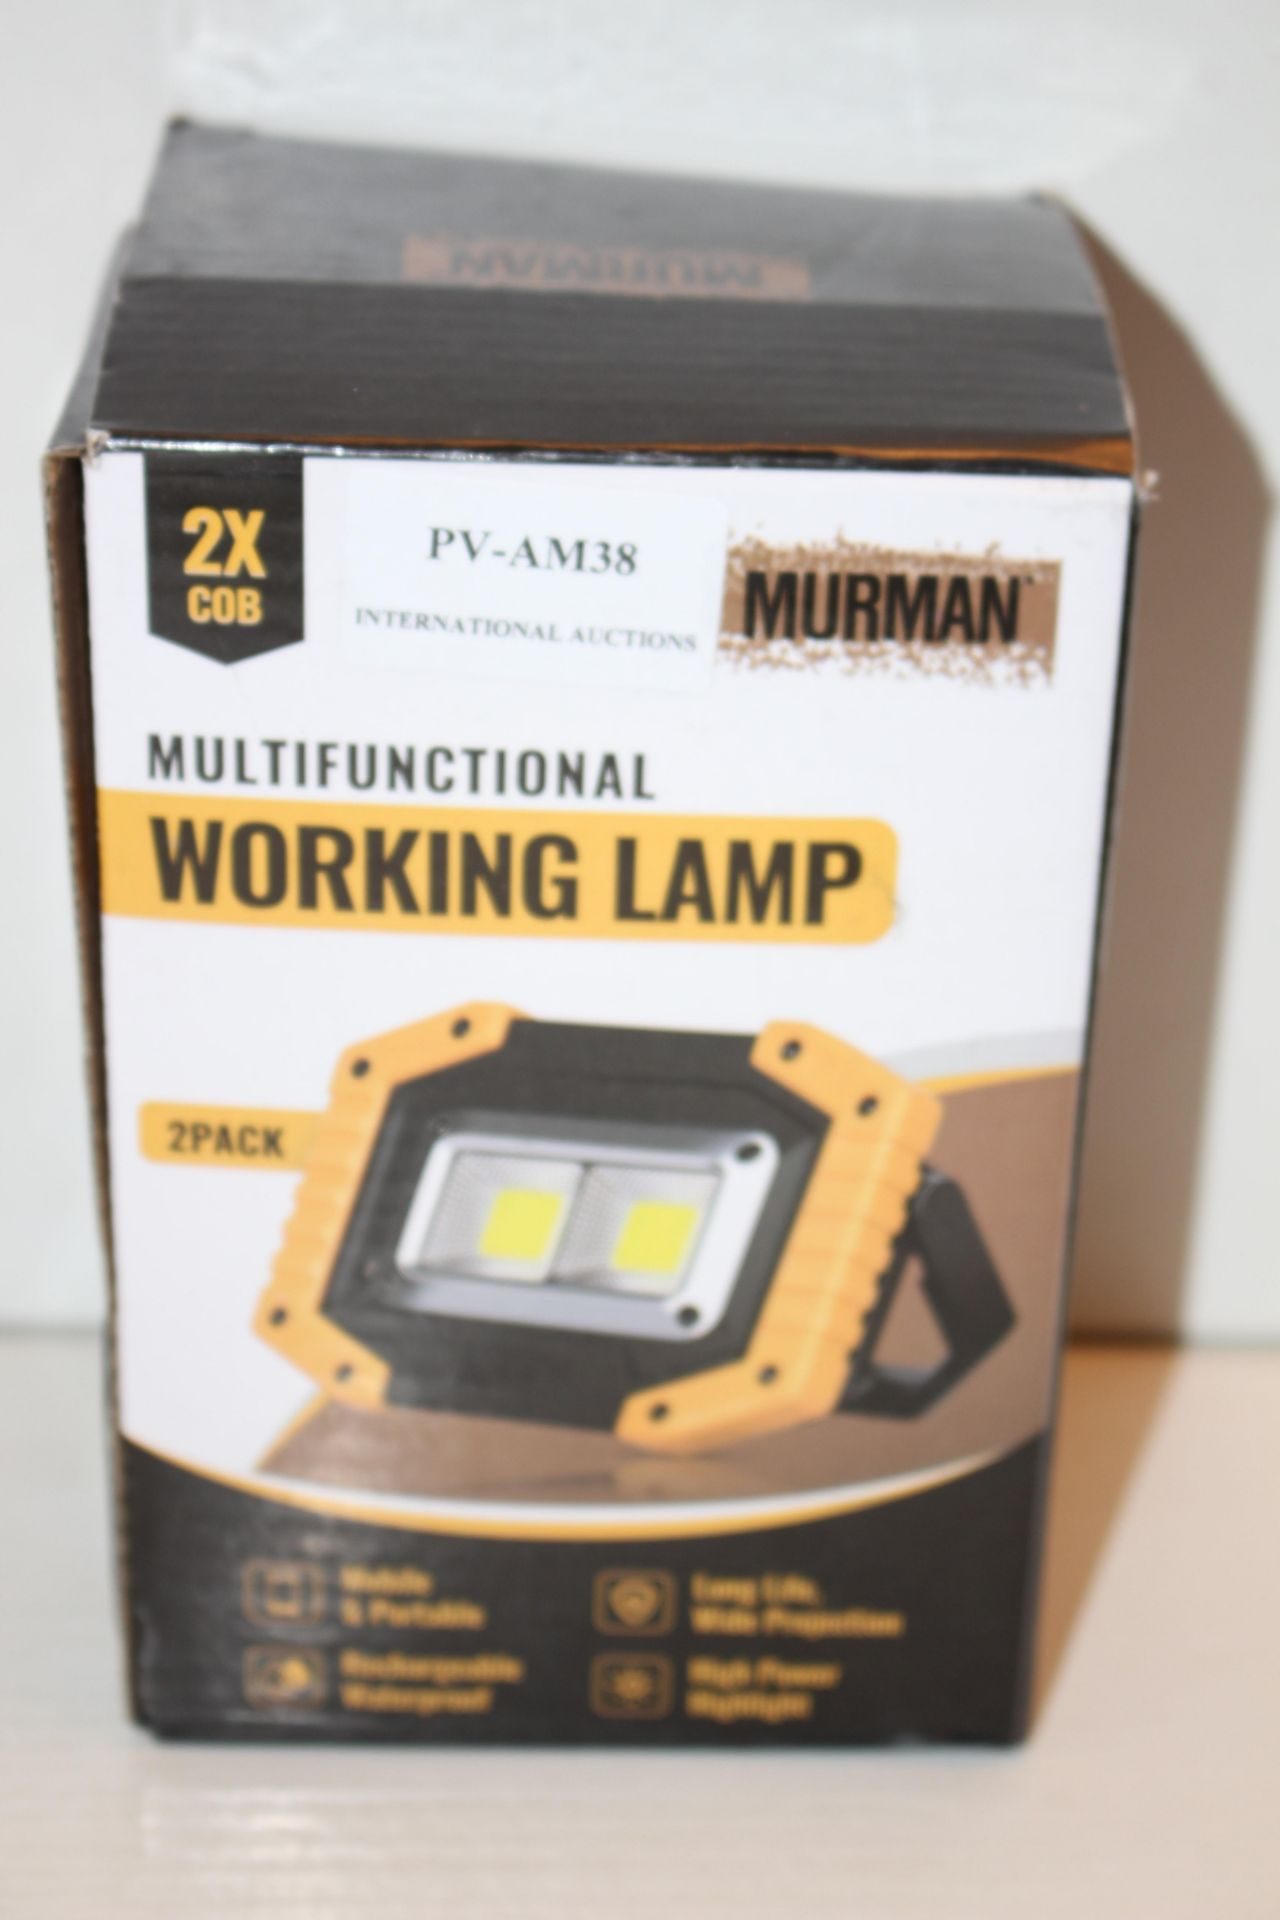 BOXED MURMAN WORKING LAMPCondition ReportAppraisal Available on Request- All Items are Unchecked/